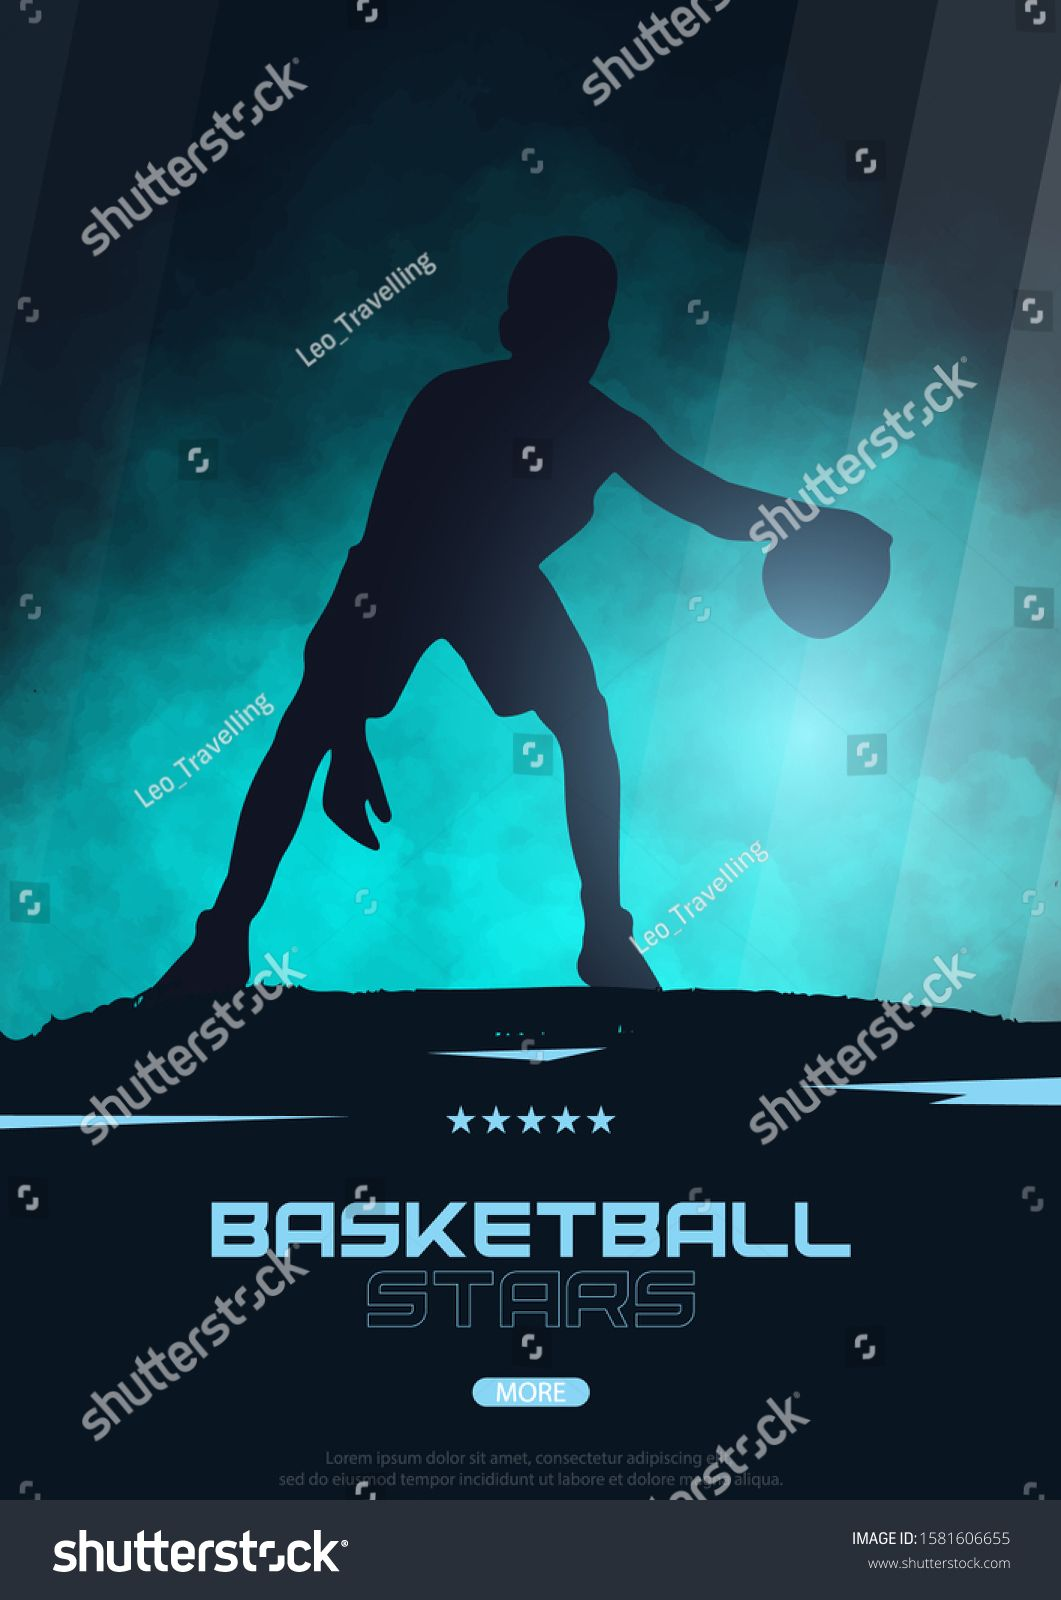 Basketball Sports Movie Posters